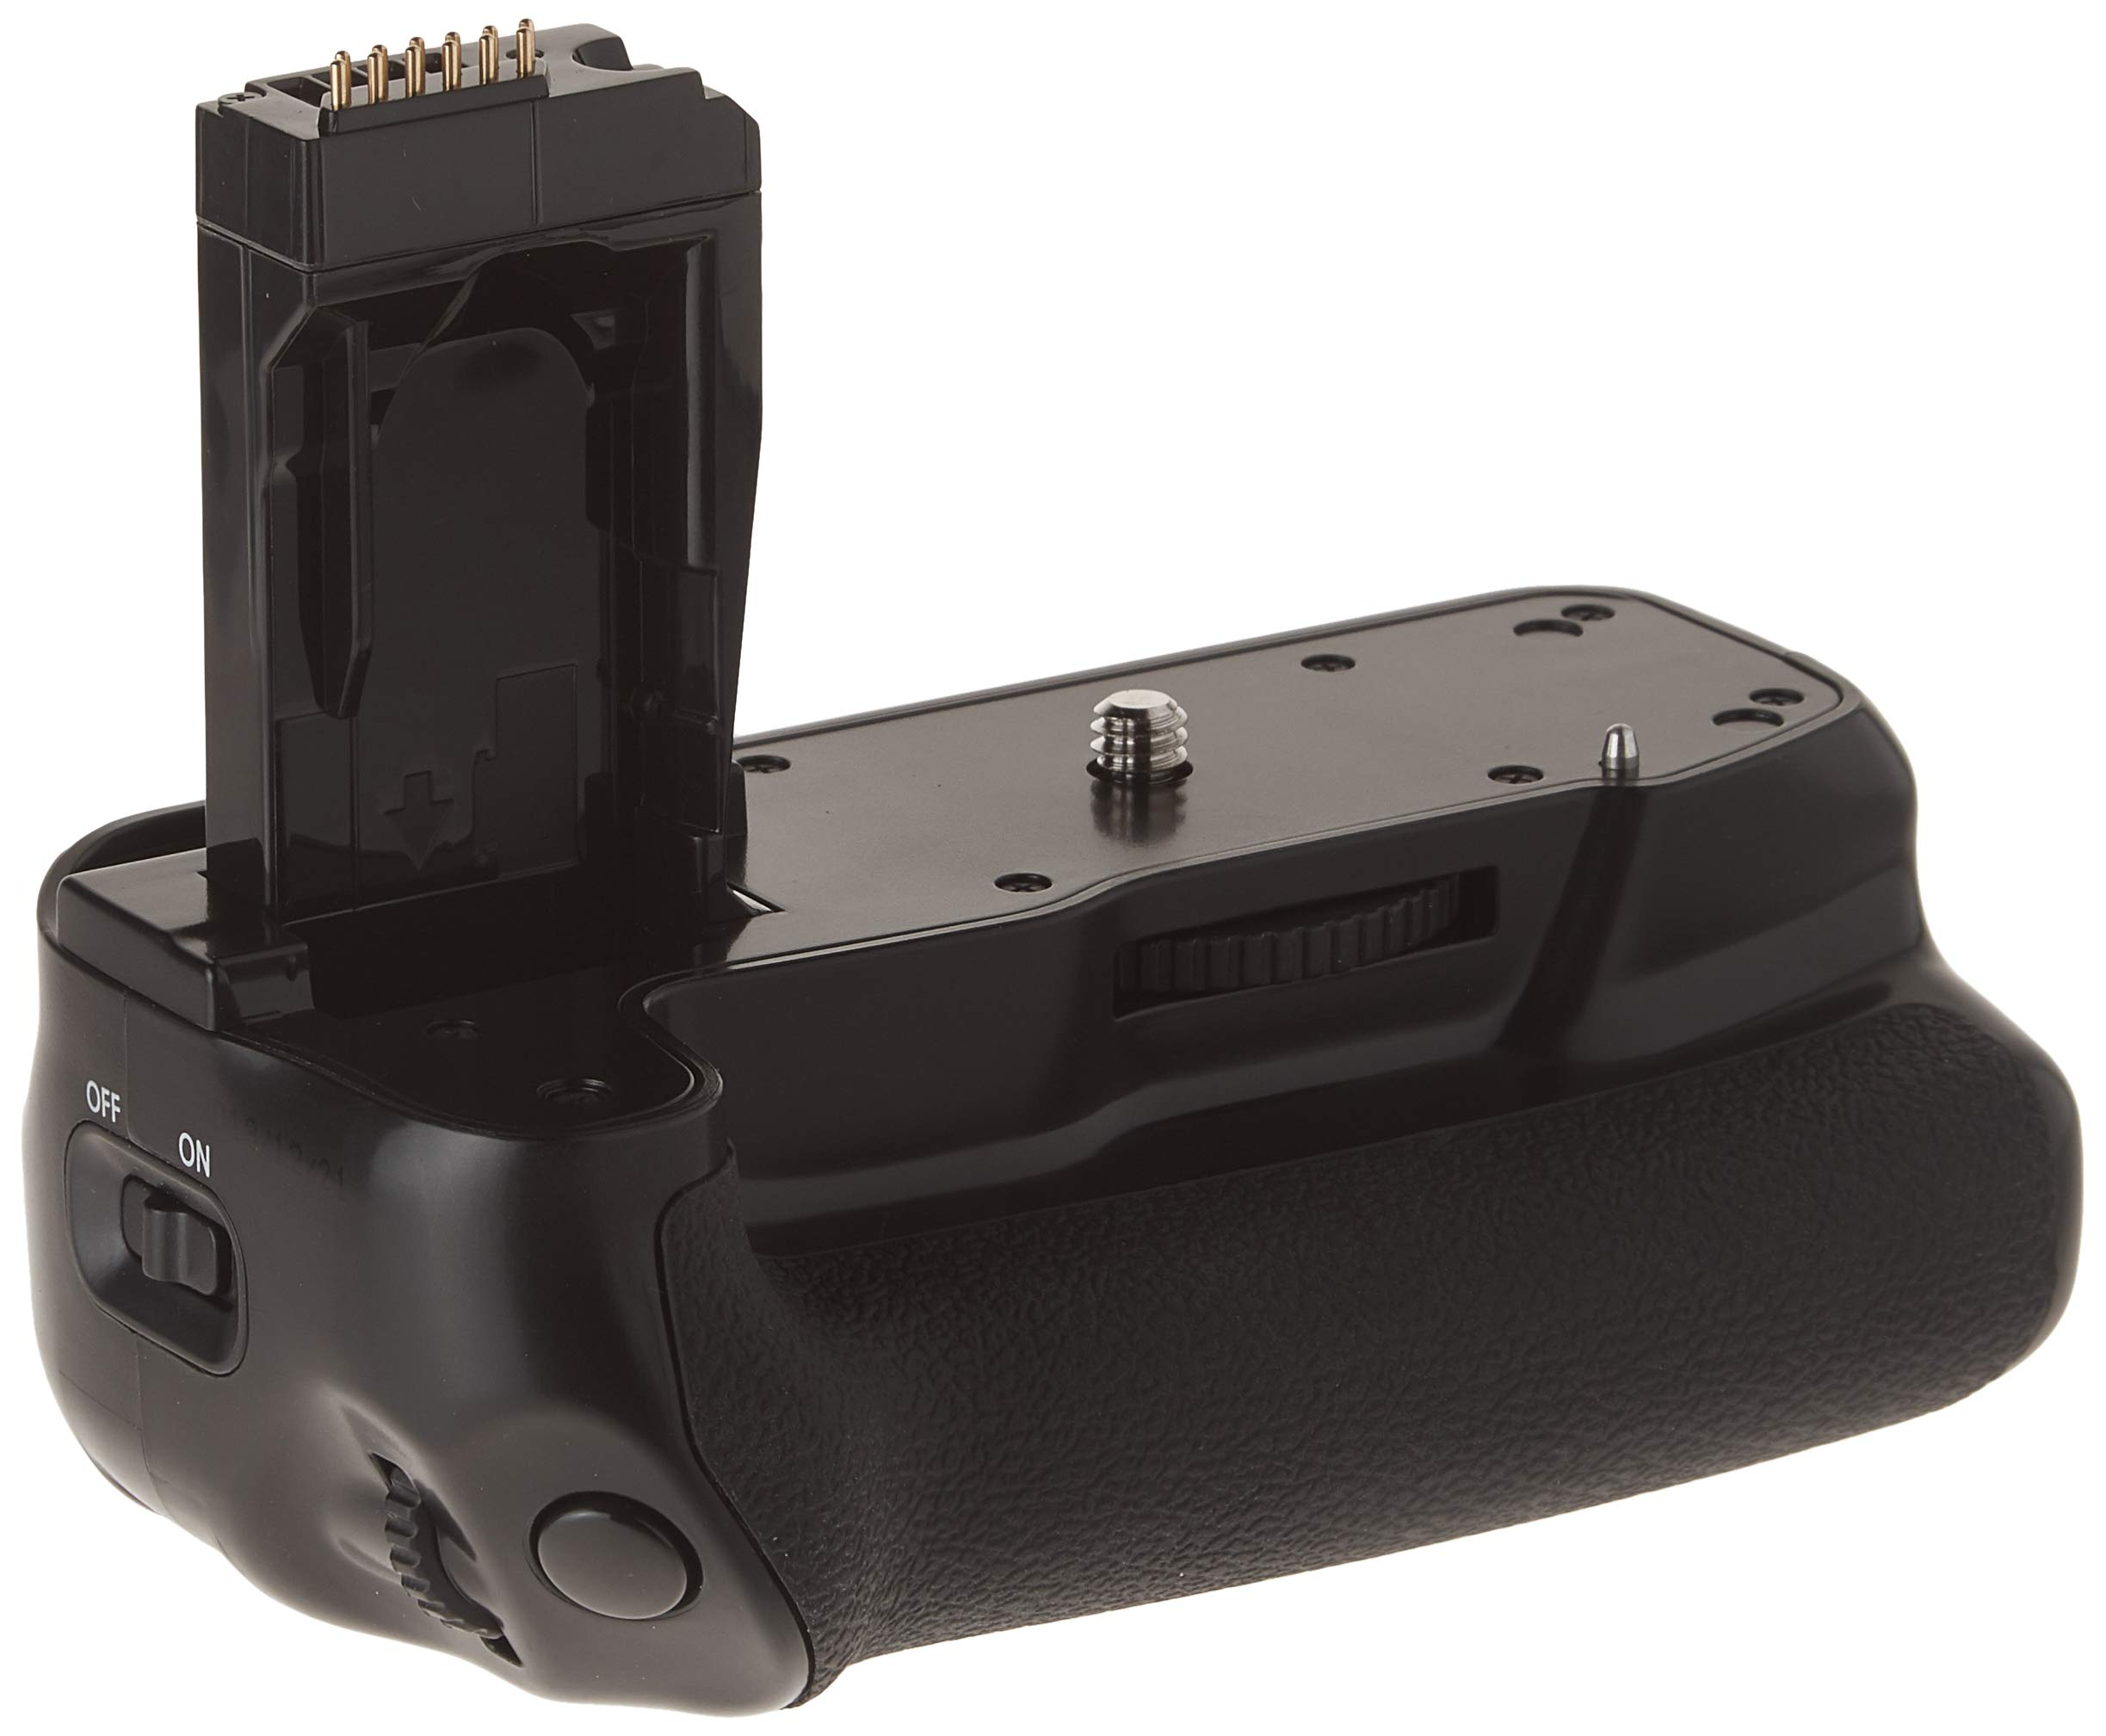 Neewer NW-760D Battery Grip Replacement for BG-E18 Work with LP-E17 Battery for Canon EOS 750D/T6i, 760D/T6s by Neewer